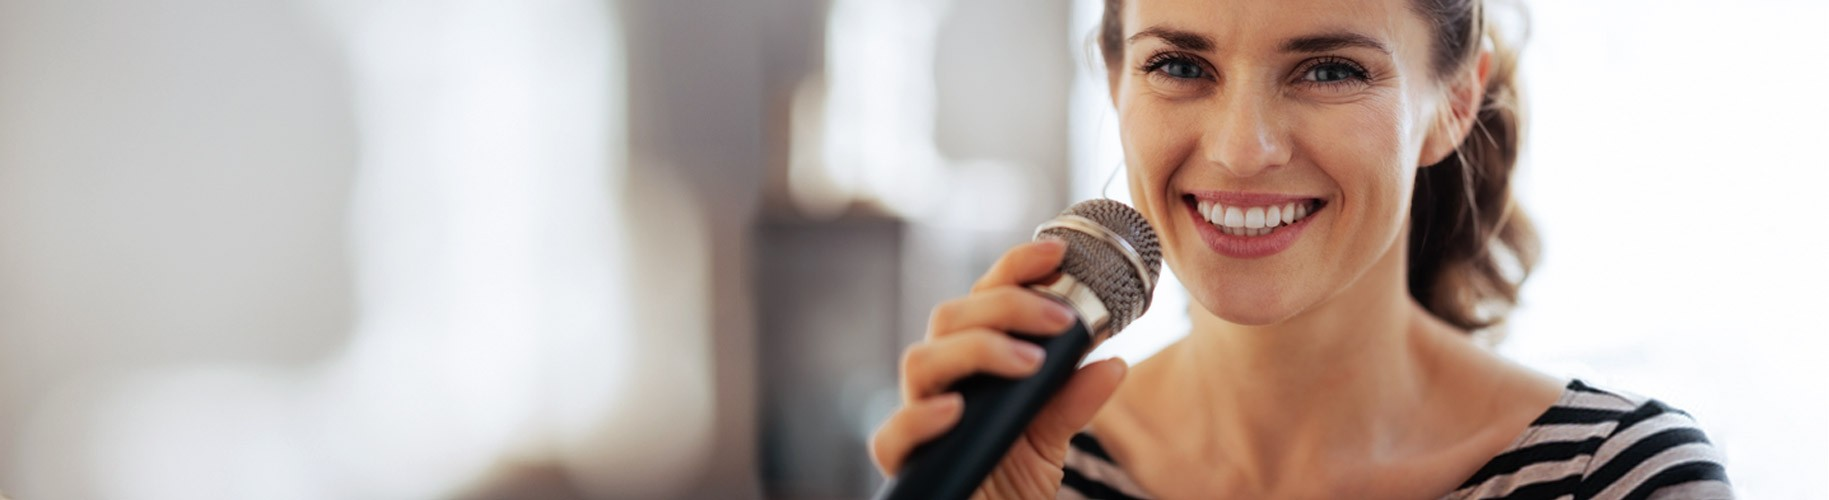 Singing Lesson Downloads - Singing Lessons with Saher Galt